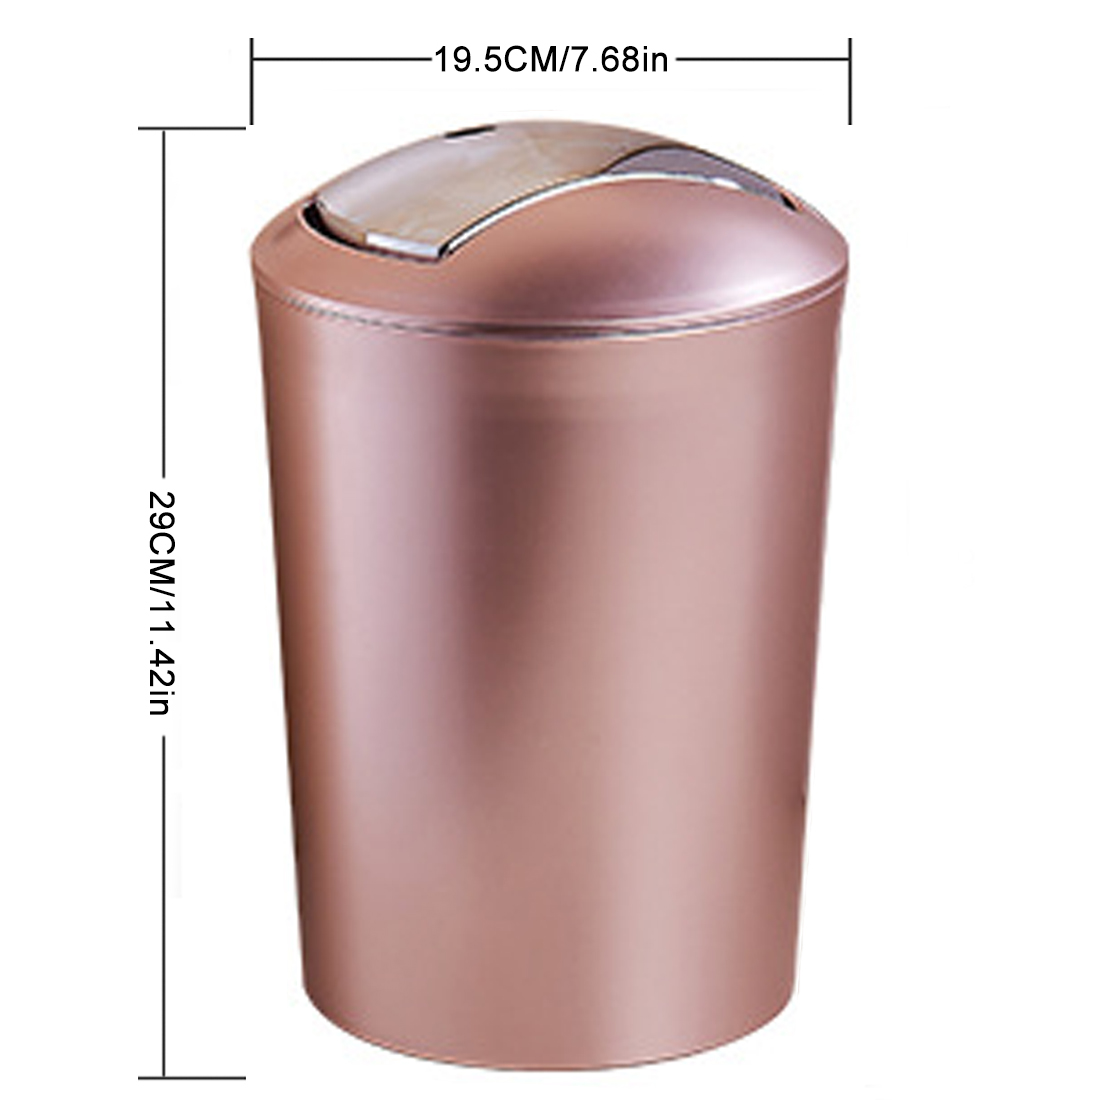 Copper Trash Can With Lid Us 18 15 16 Off Hot 6 5l European Style Trash Bin Minicast Garbage Can High Quality Recycling Wastebin With Lid Home Bath Kitchen Decor 2 Colors In